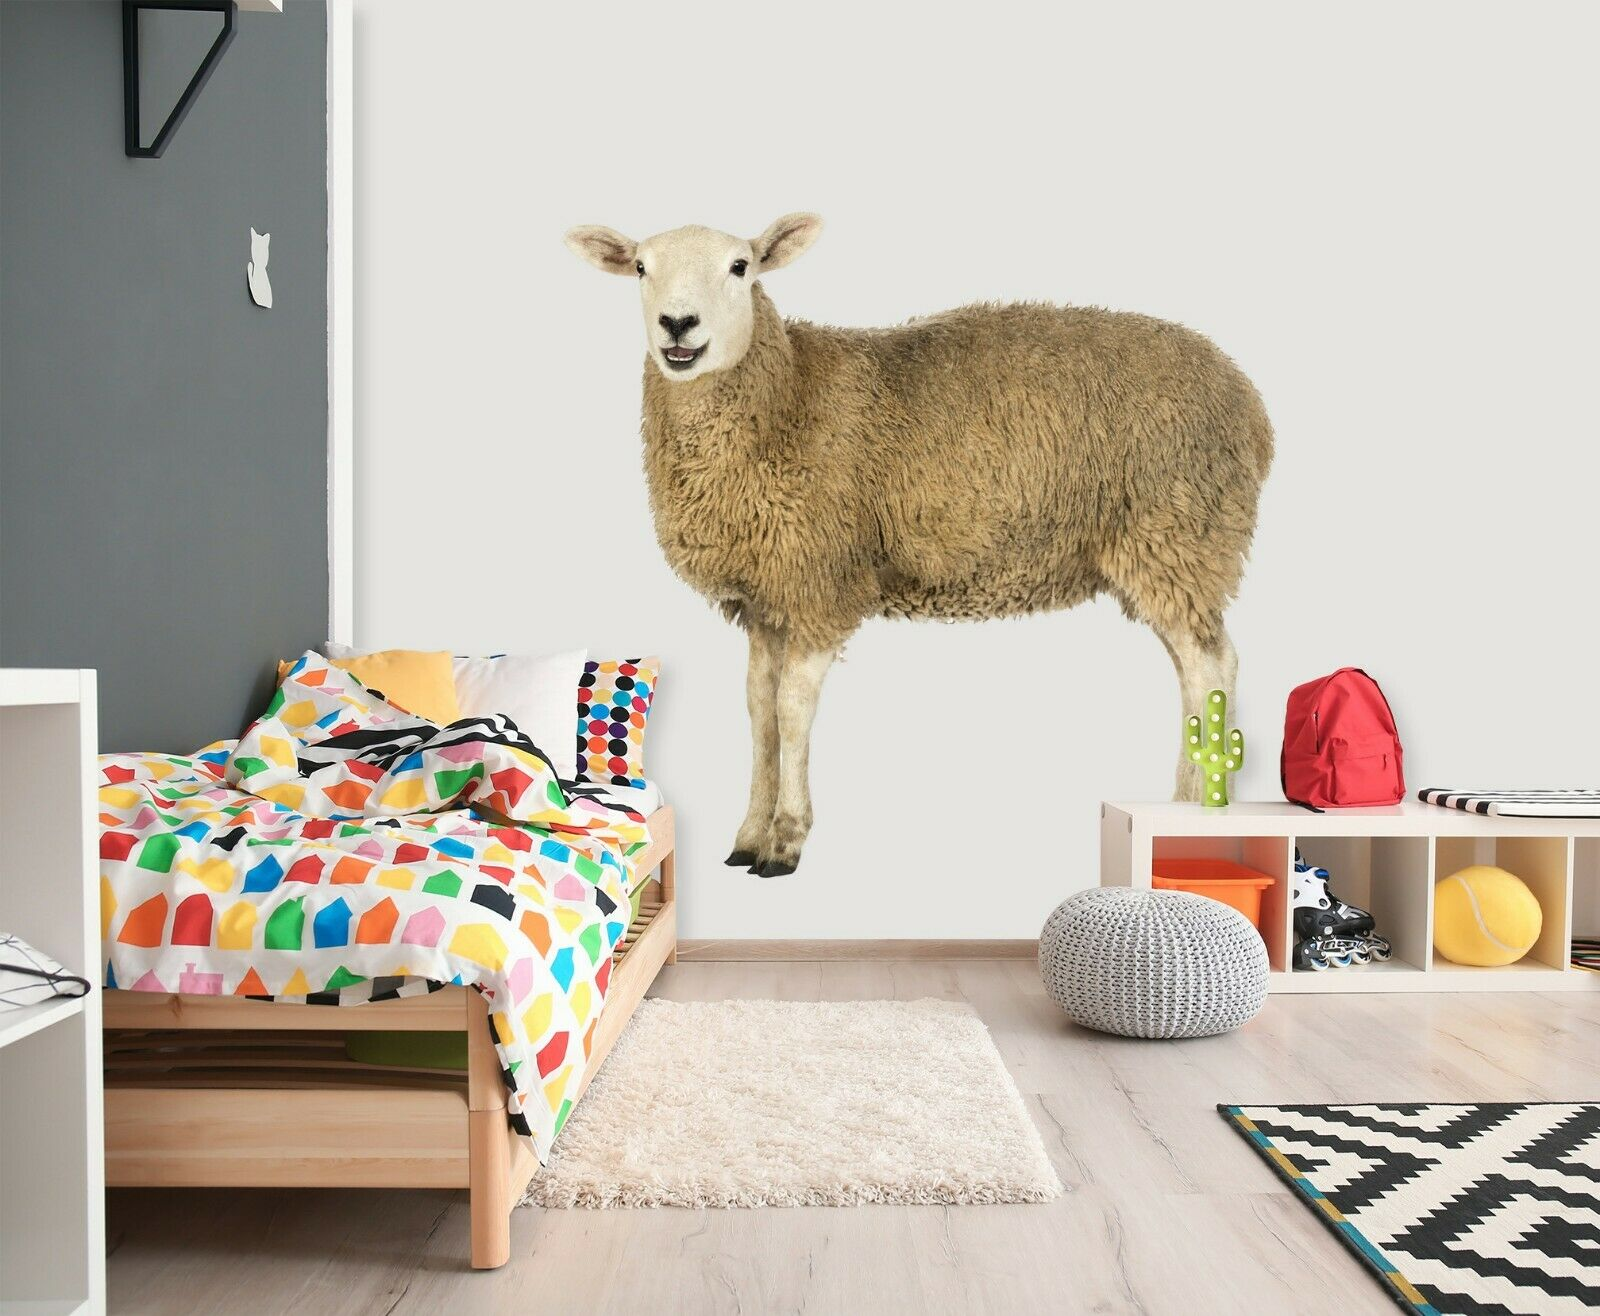 3D Sheep Wool A64 Animal Wallpaper Mural Poster Wall Stickers Decal Zoe